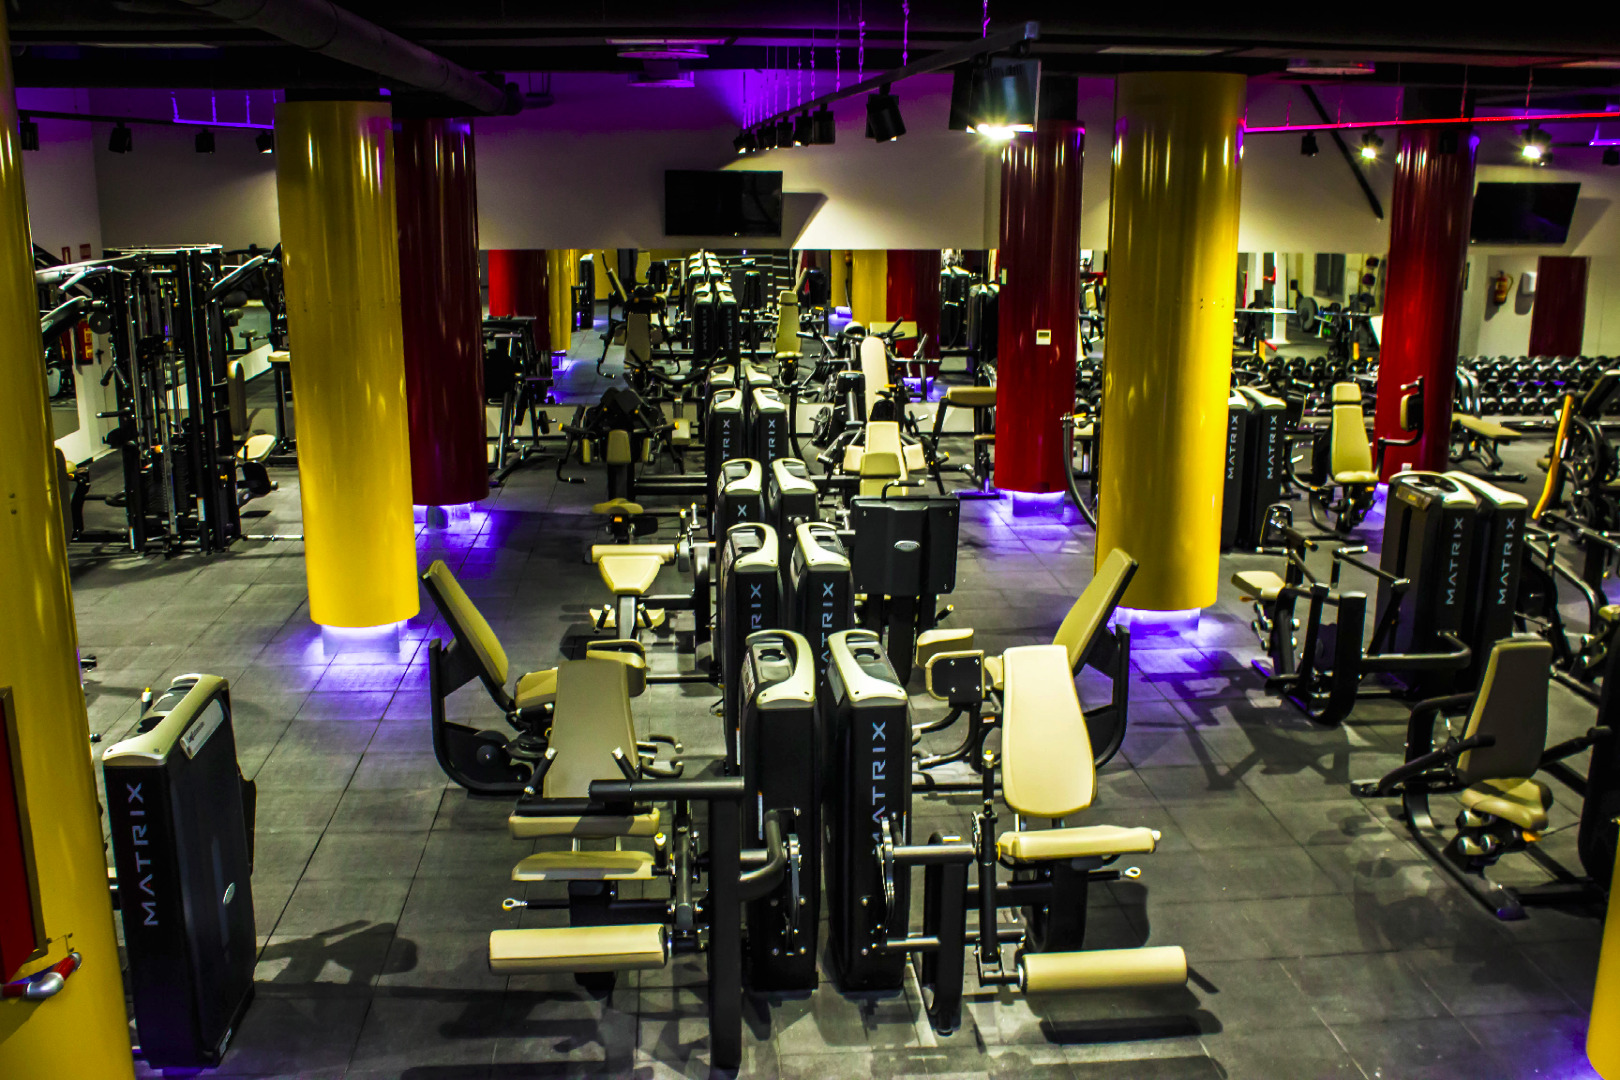 Oferta gimnasio nine fitness madrid gymforless for Gimnasio 24h madrid